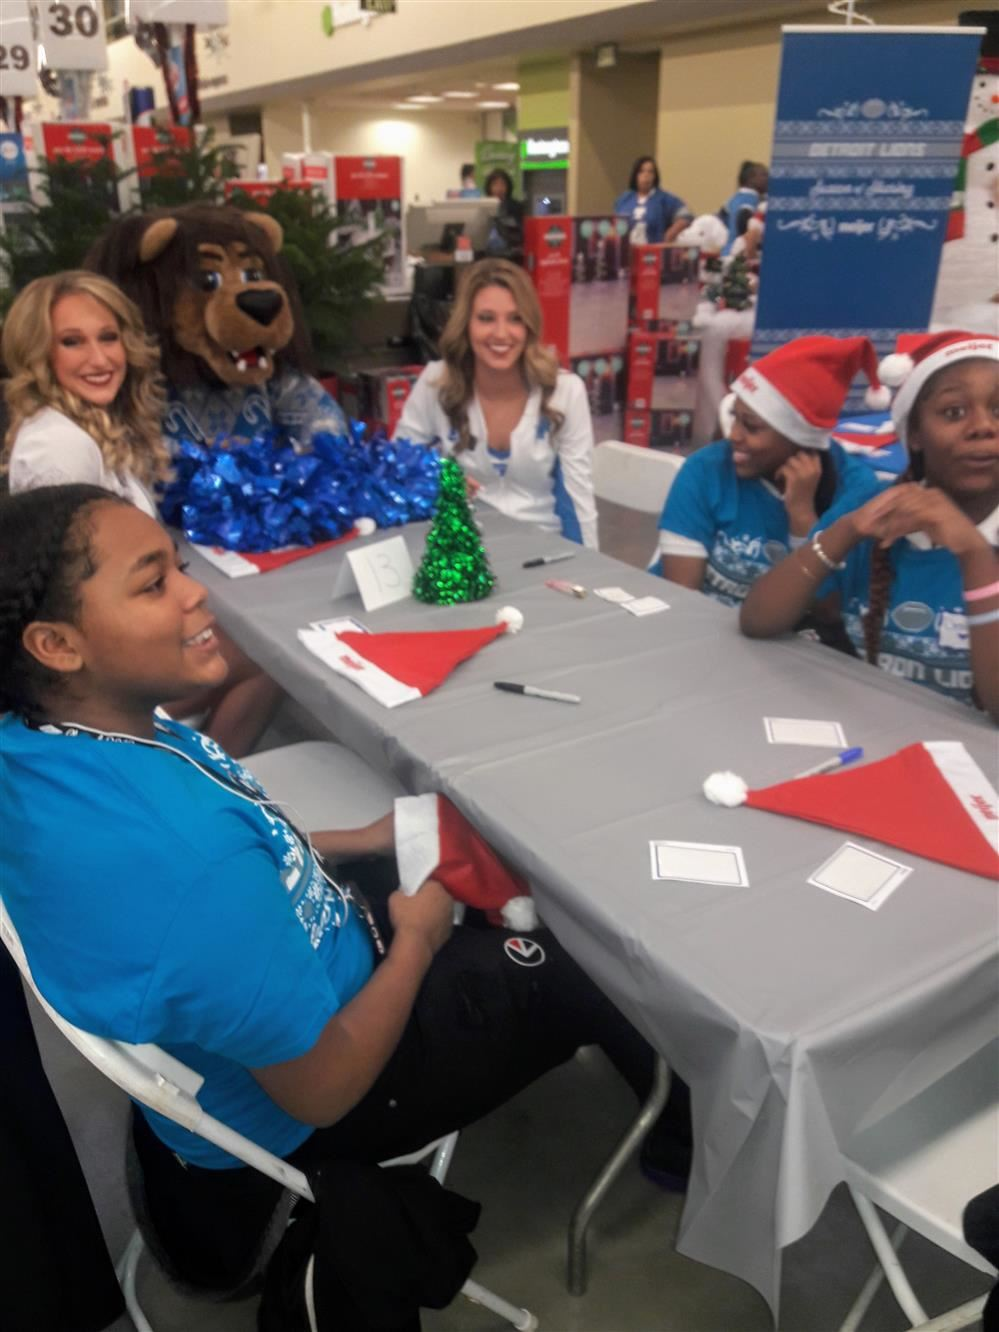 Students sitting with Detroit Lions Cheerleaders at Meijer